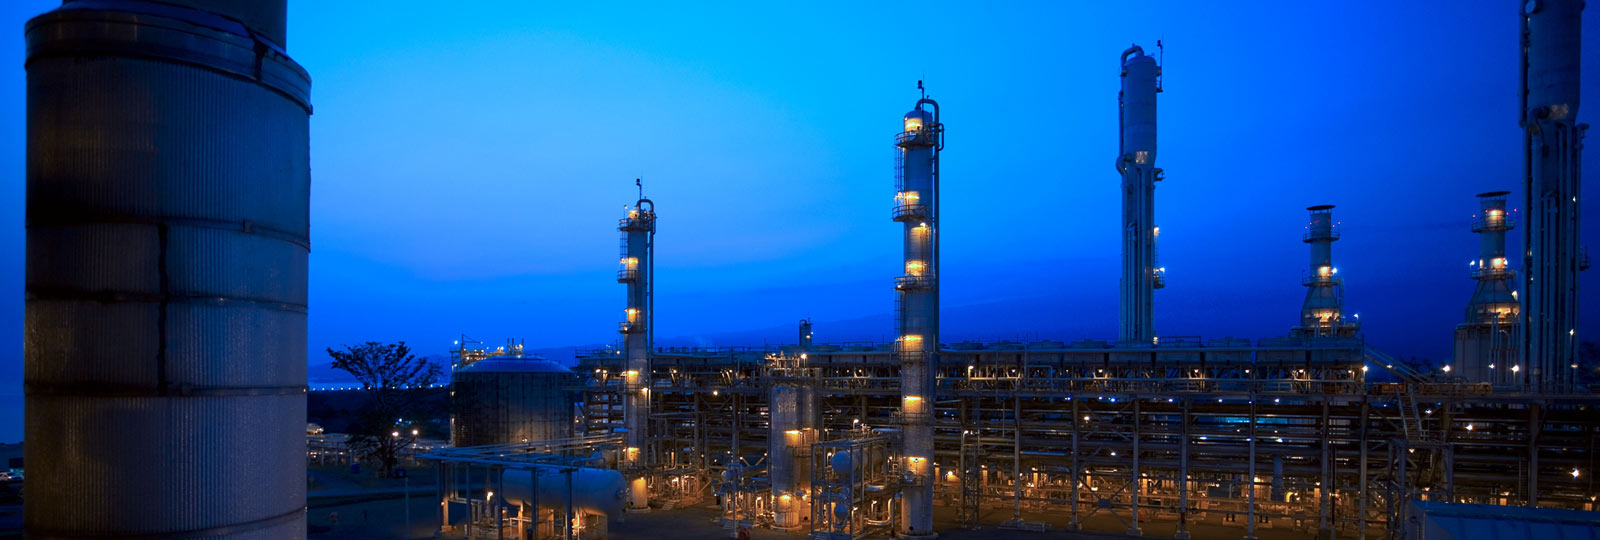 Night shot of Methanol plant in purple light